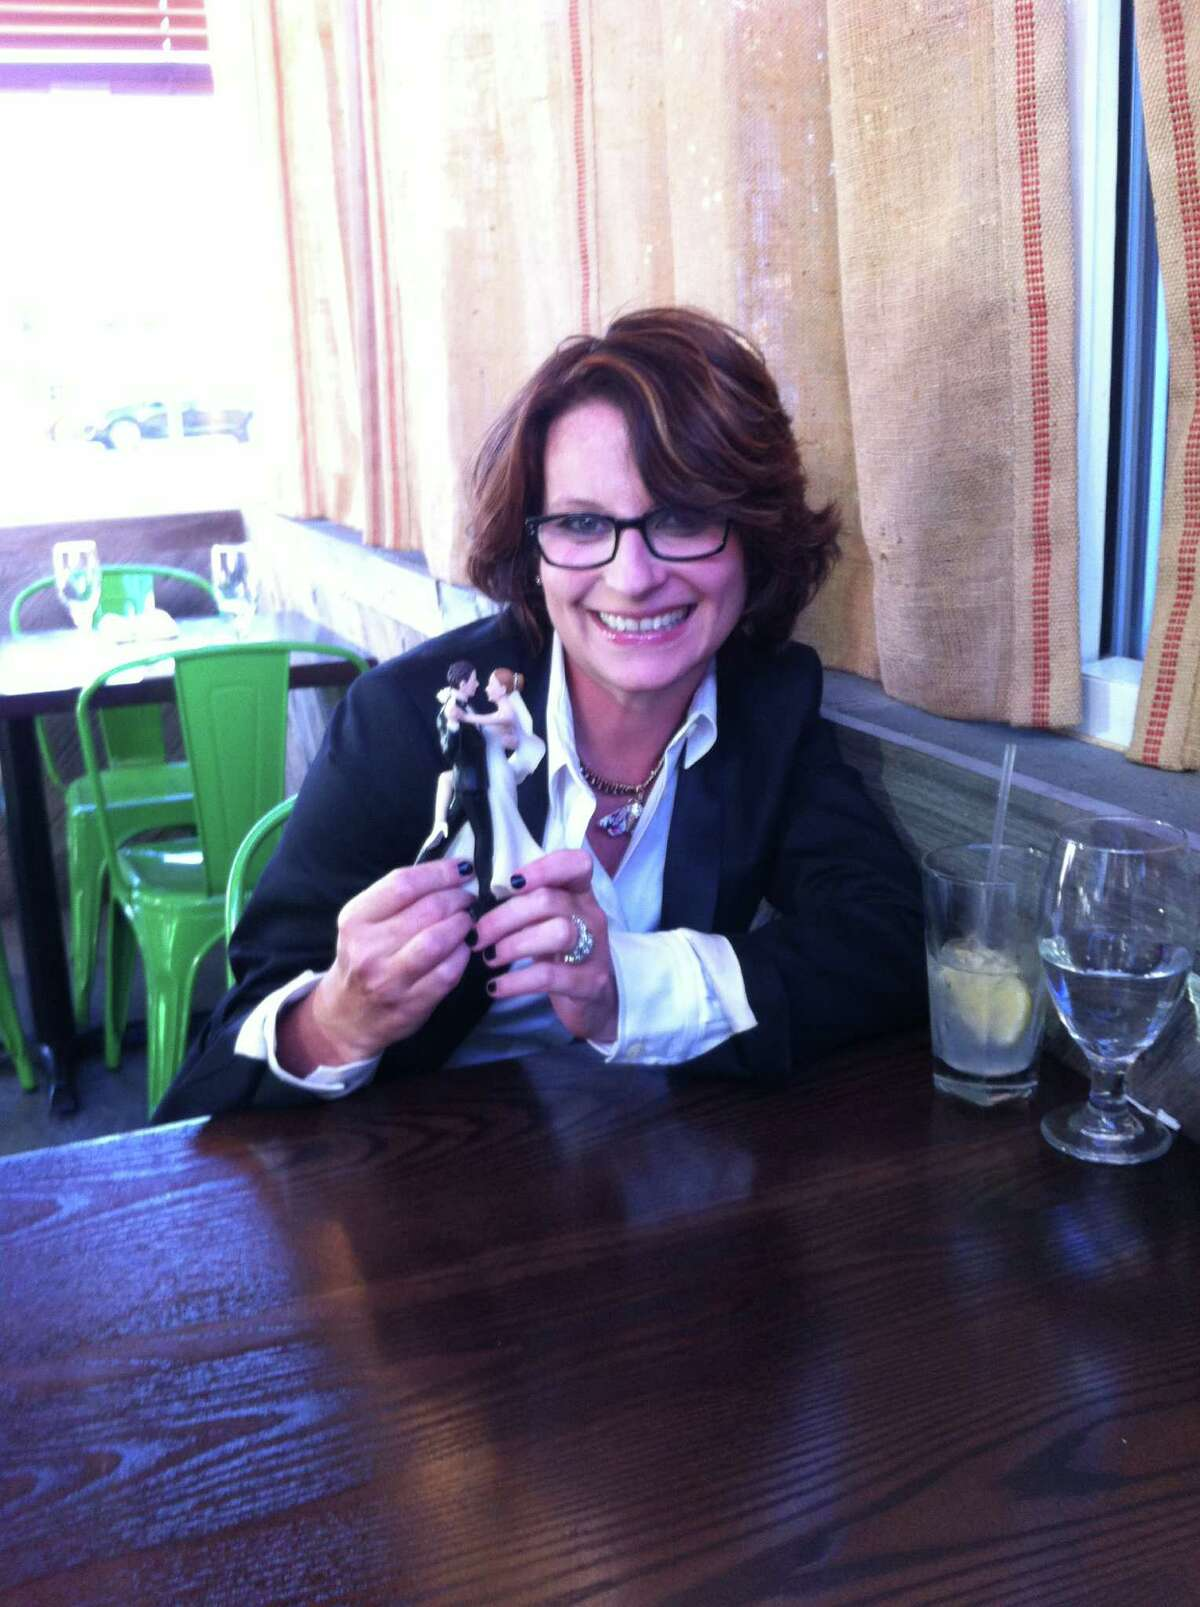 Meg Cabot made a book tour stop in Fairfield last week with the wedding cake topper she has been taking photographs of wherever she goes (ala the garden gnome in